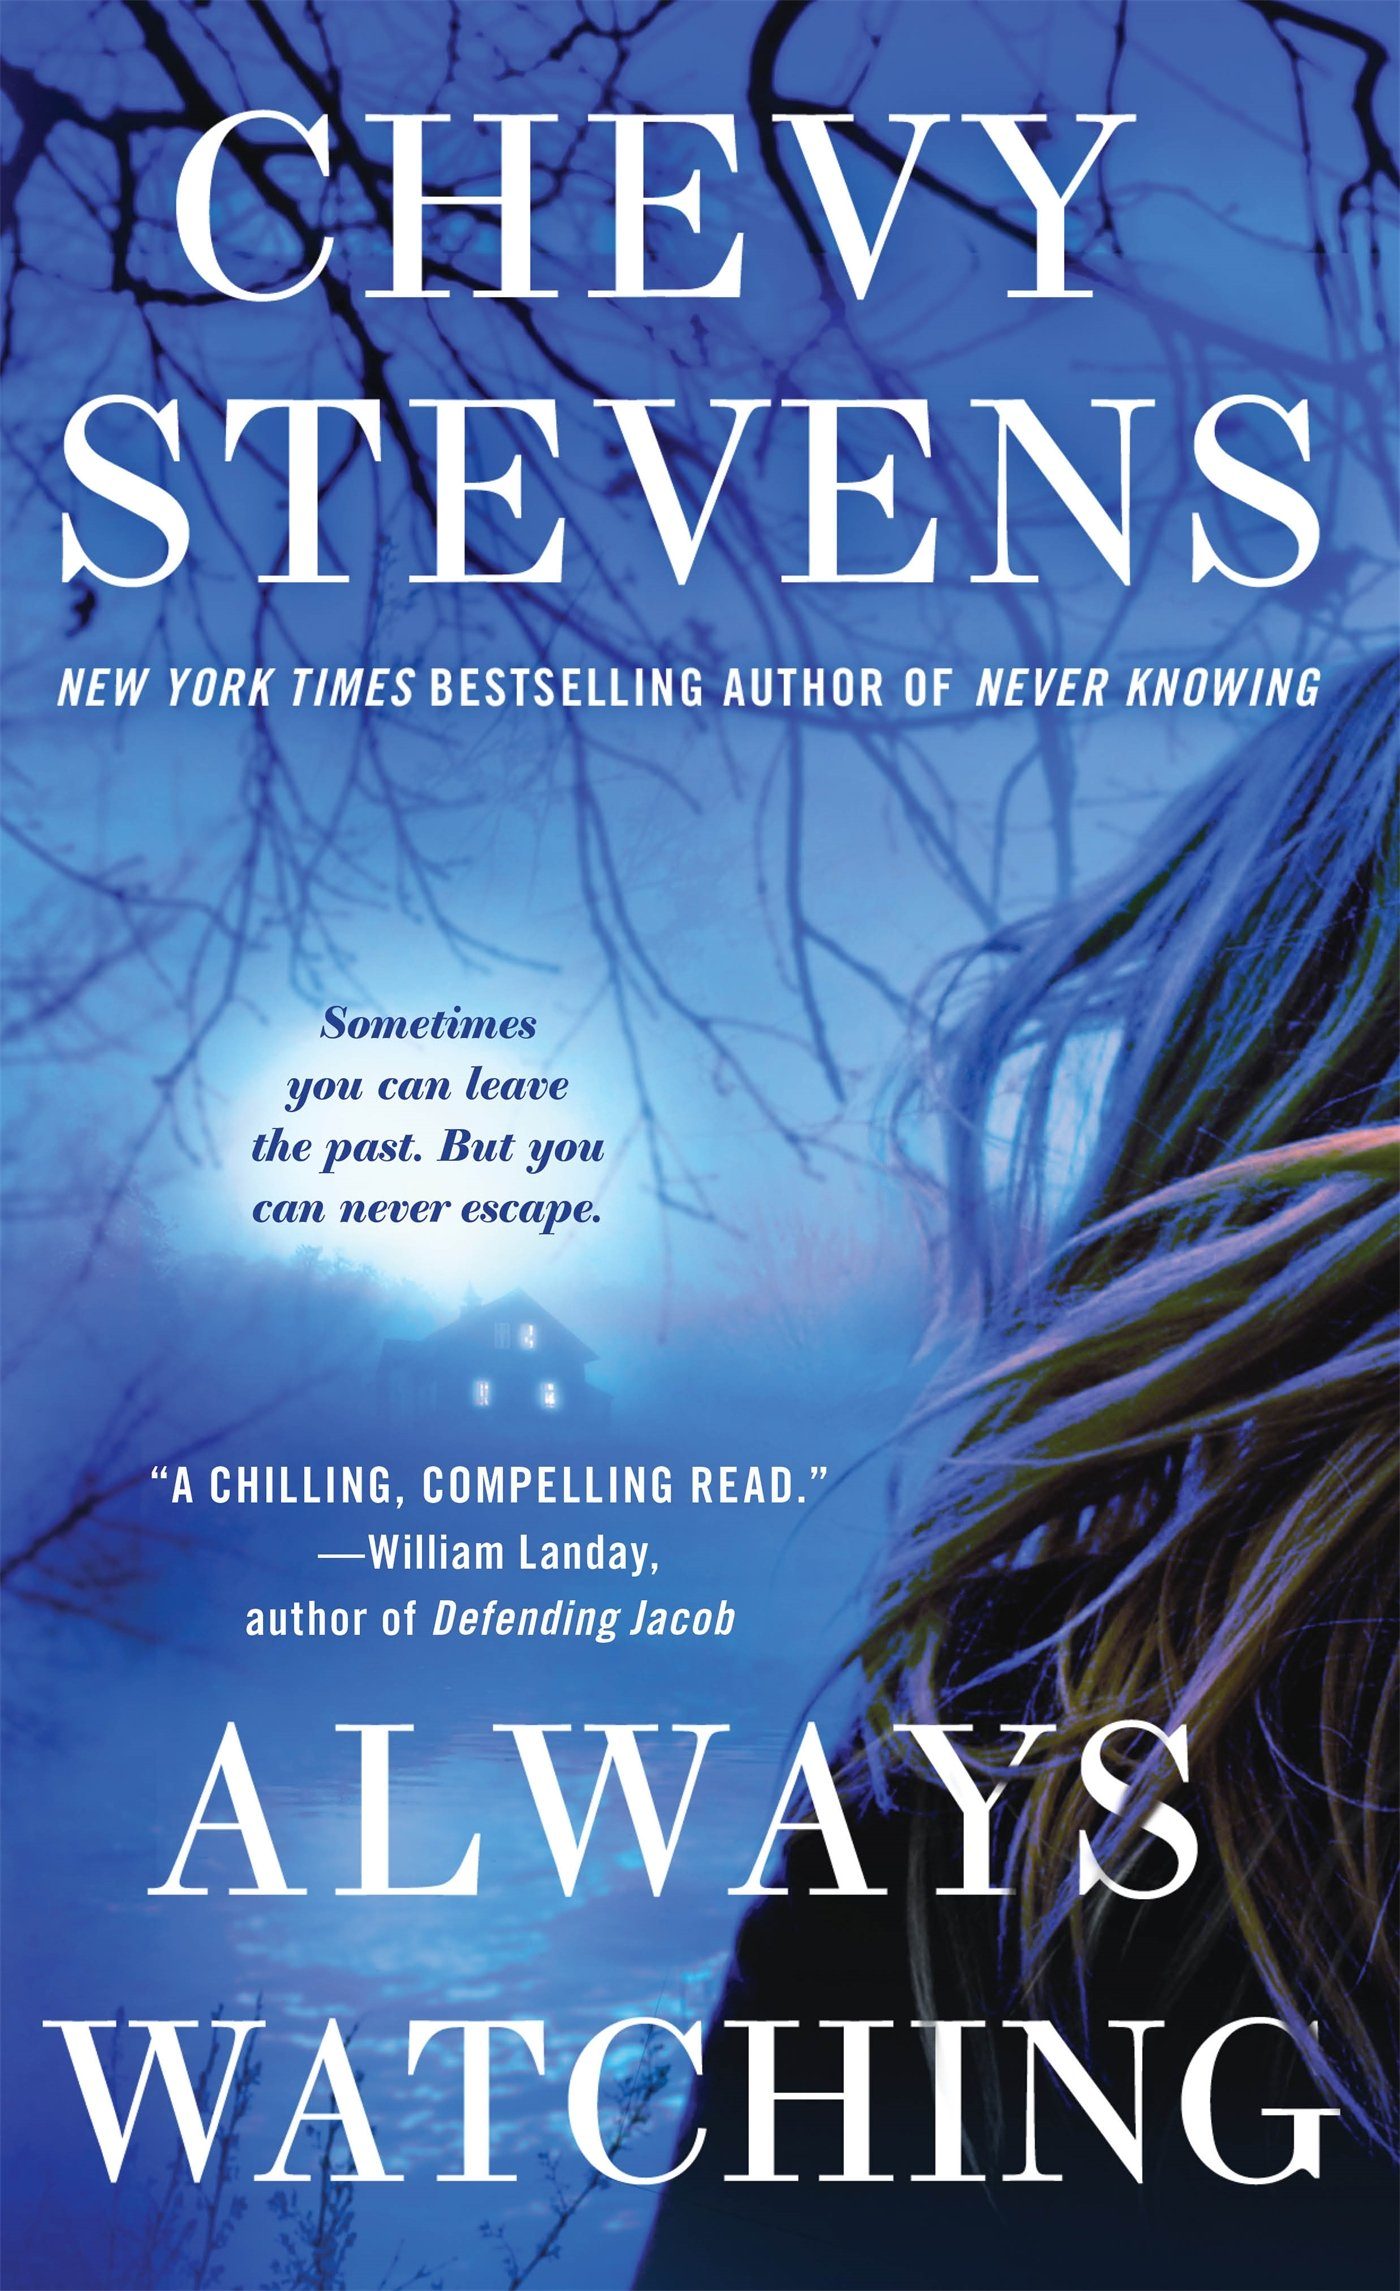 Download chevy stevens ebook